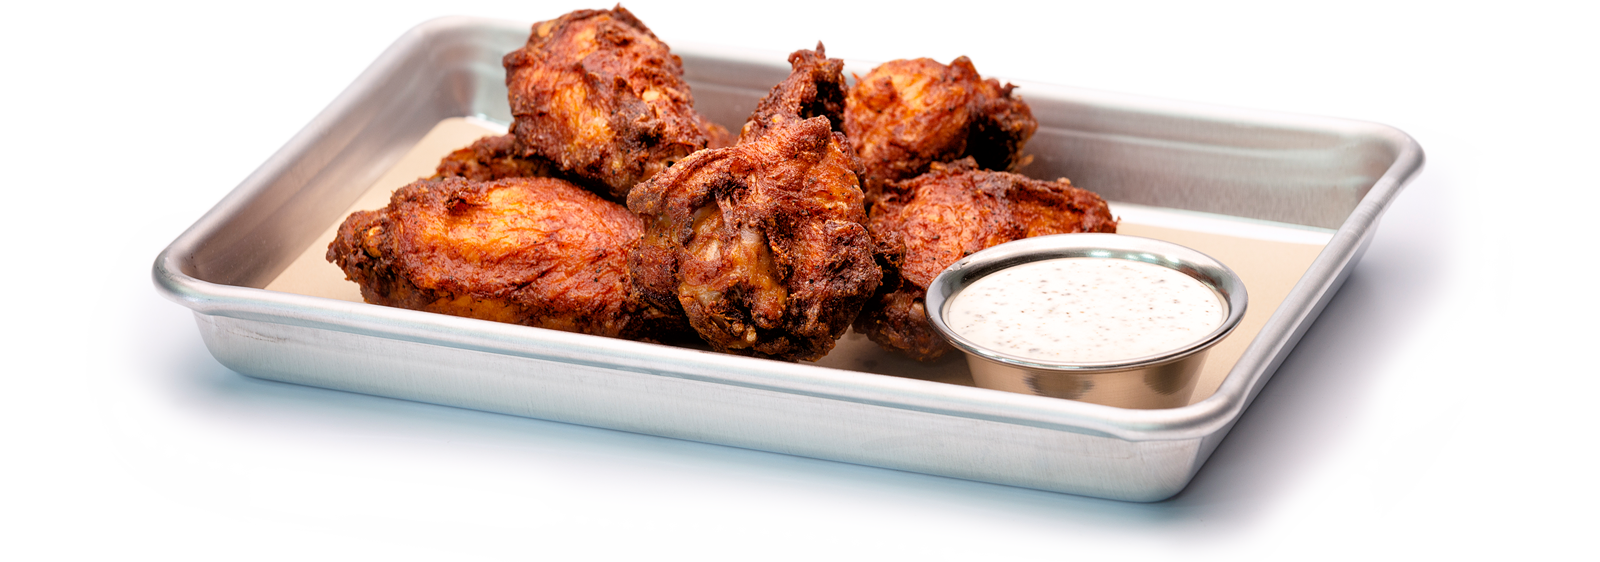 Wings on platter with sauce